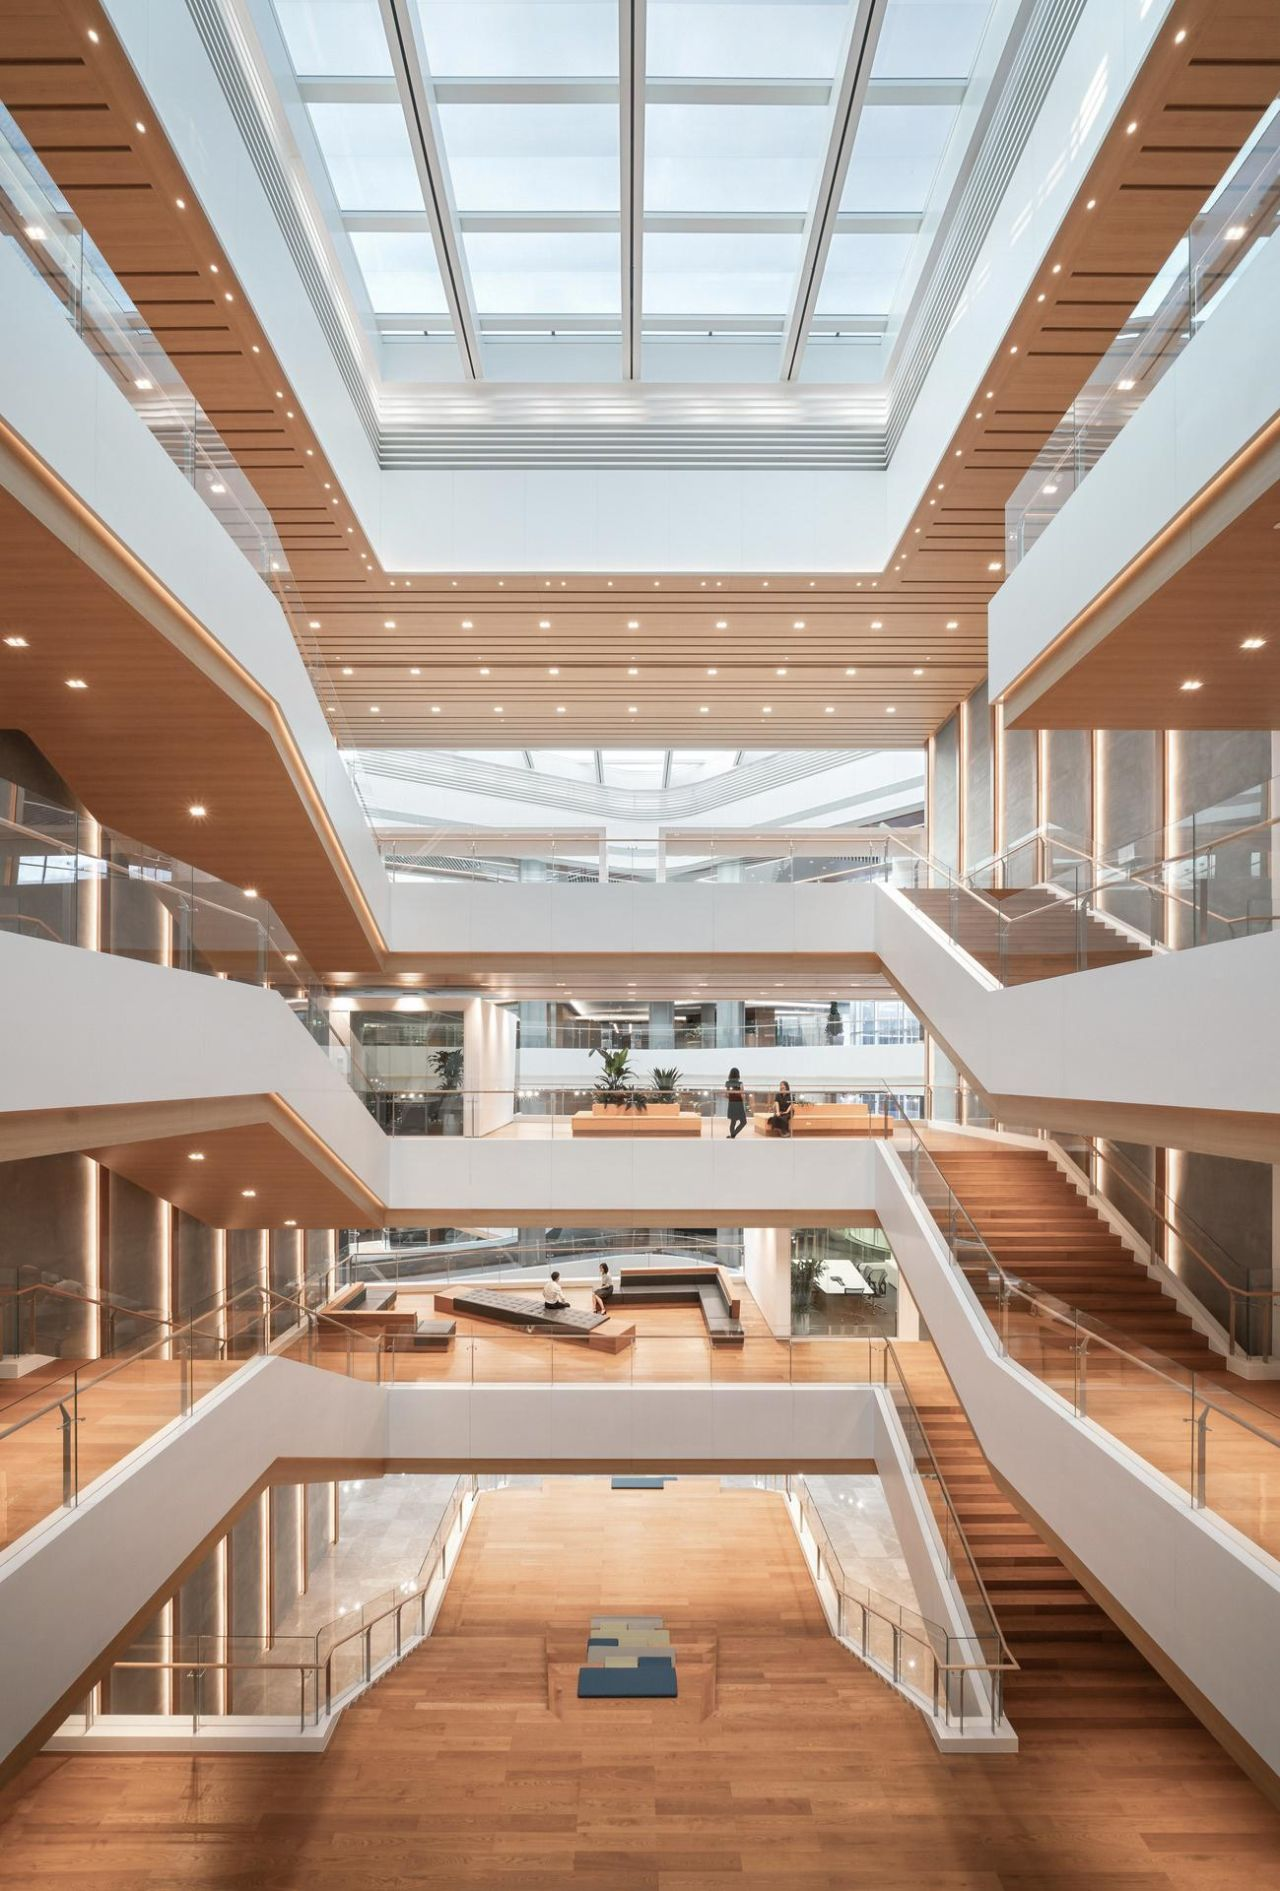 Tencent Beijing - Architectural Stairs